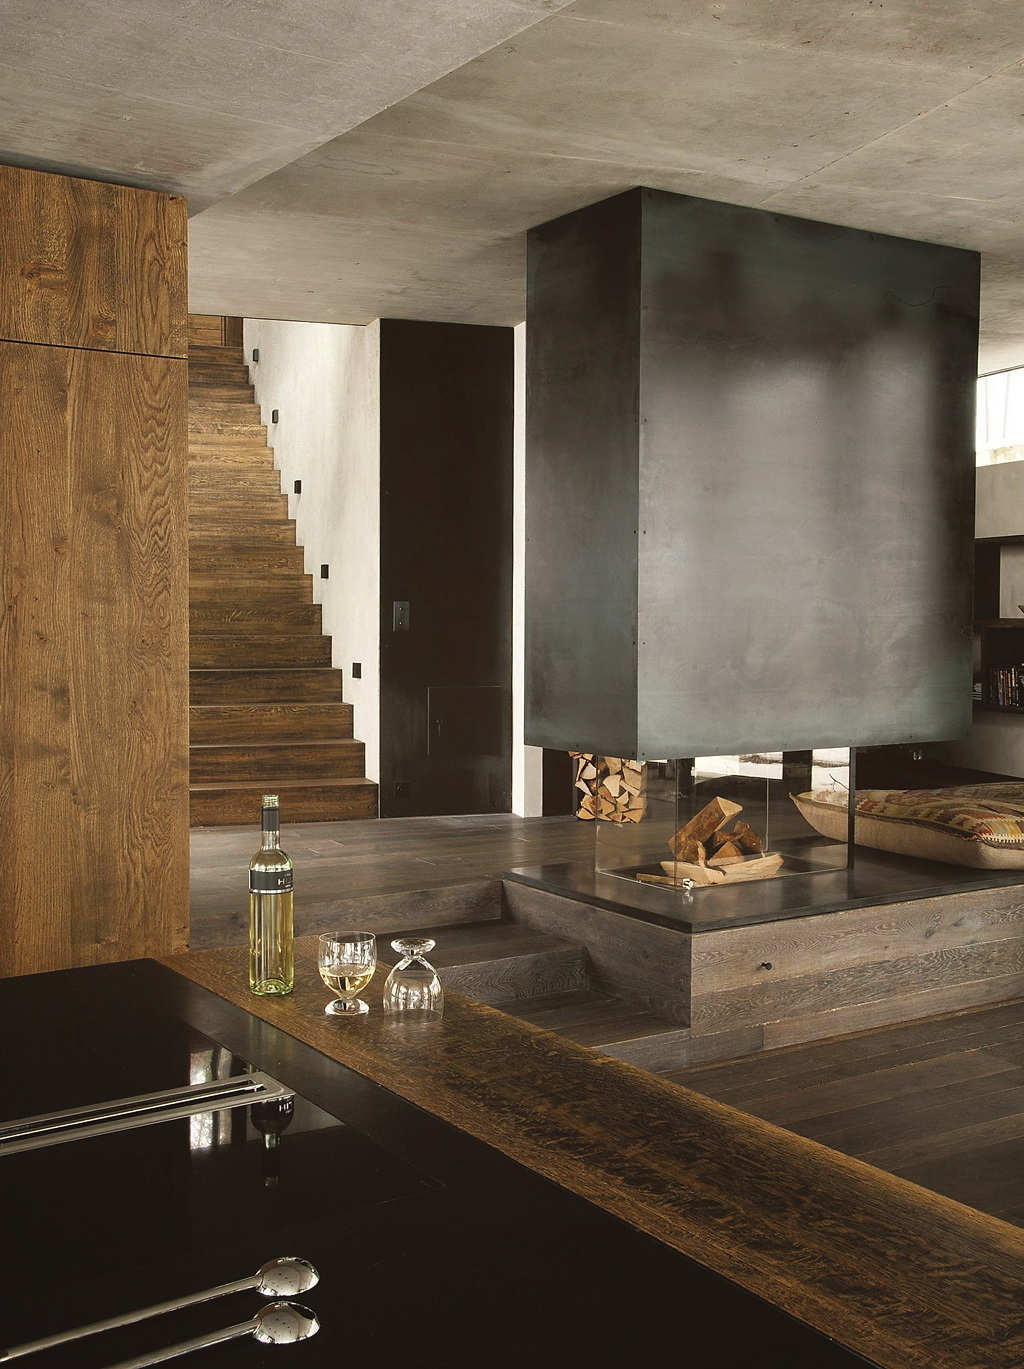 Decordemon a modern chalet in austria for Cuisine deco